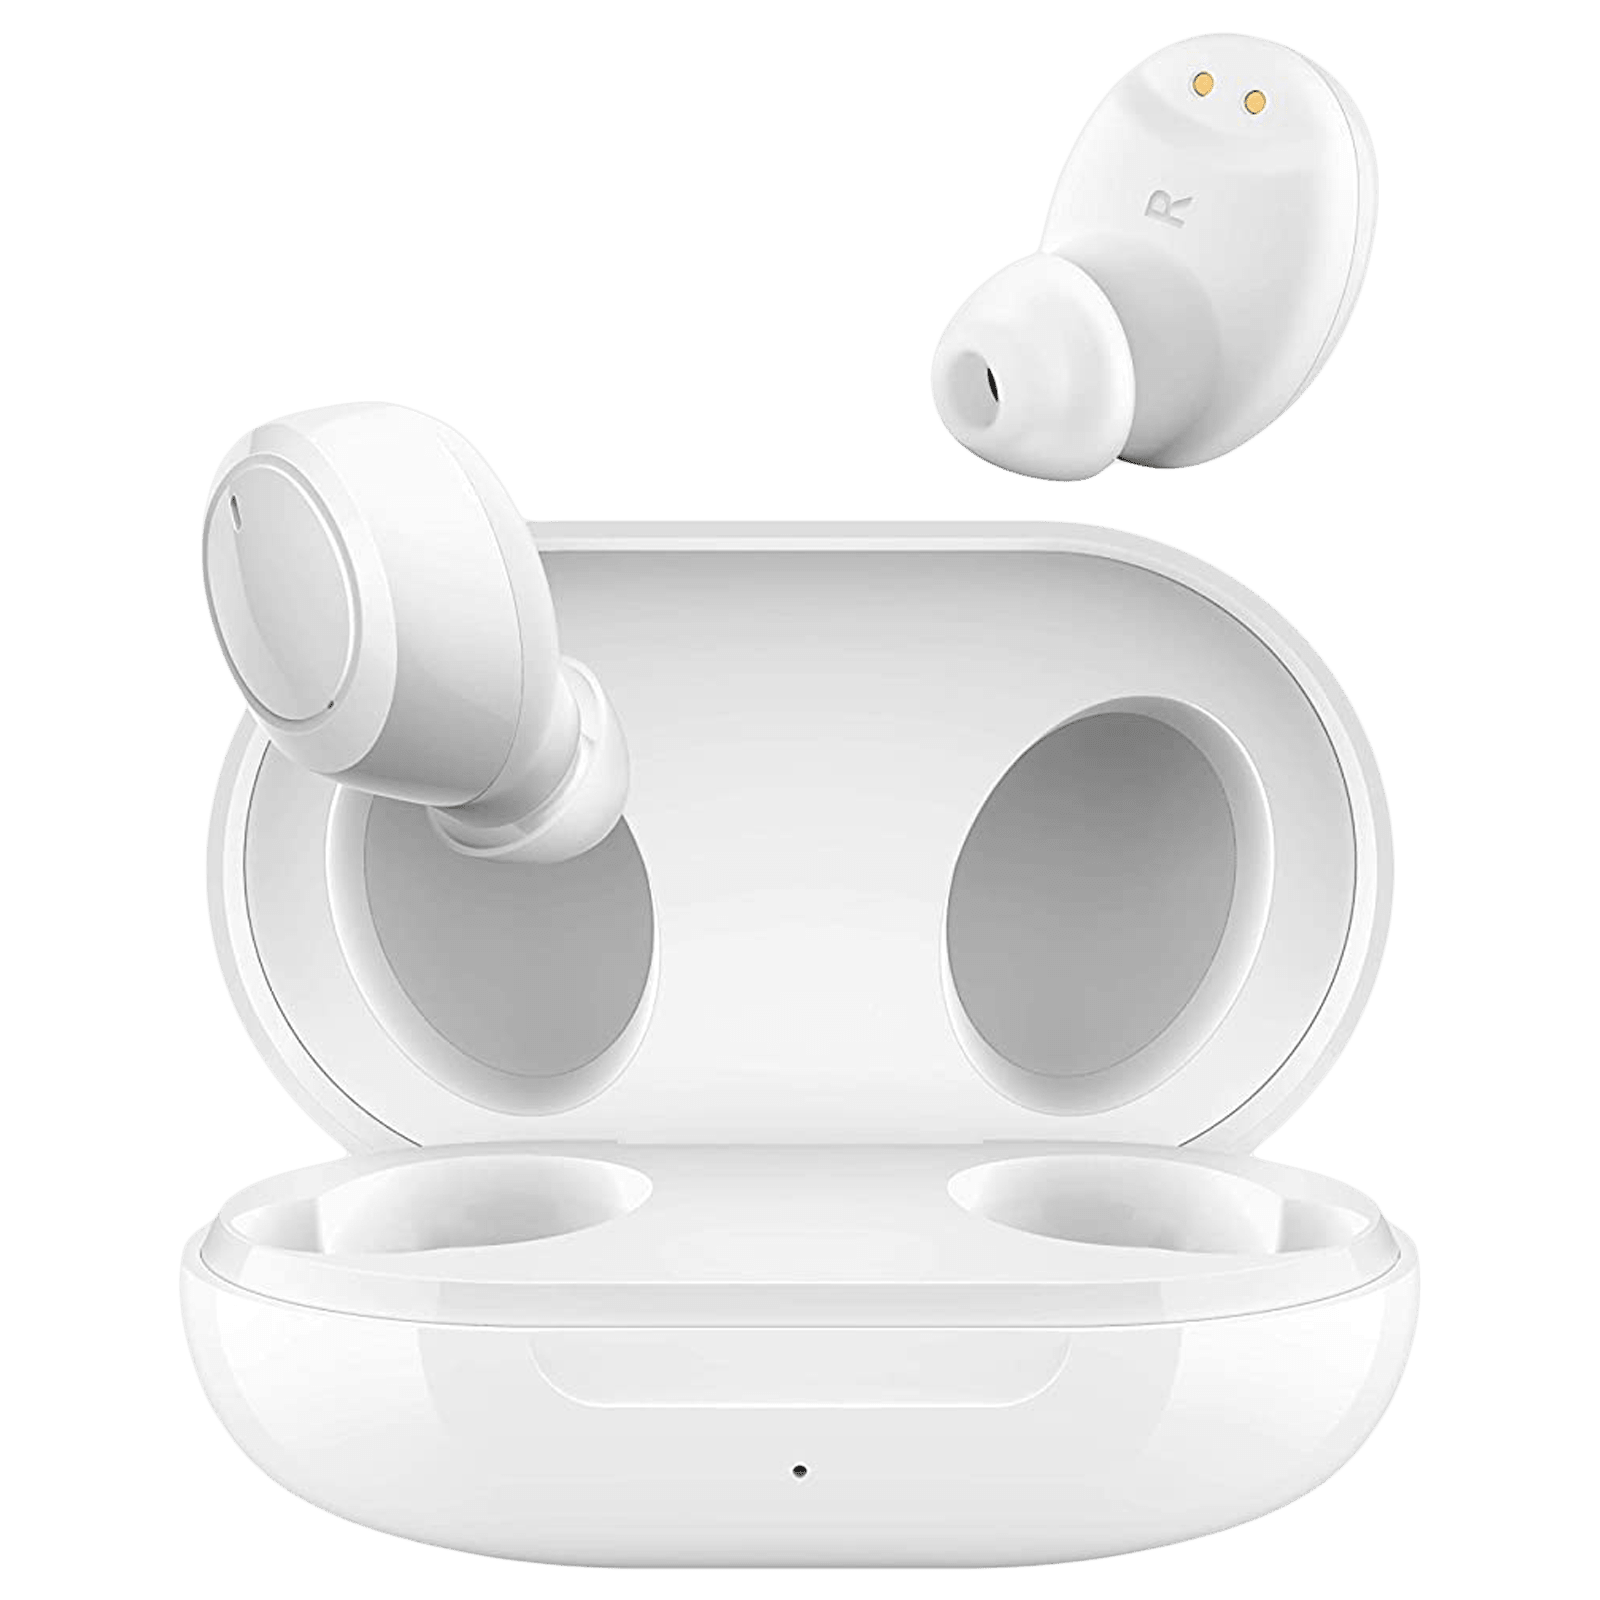 Oppo Enco W11 In-Ear Active Noise Cancellation Truly Wireless Earbuds with Mic (Bluetooth 5.0, Dust and Water Resistance, ETI41, White)